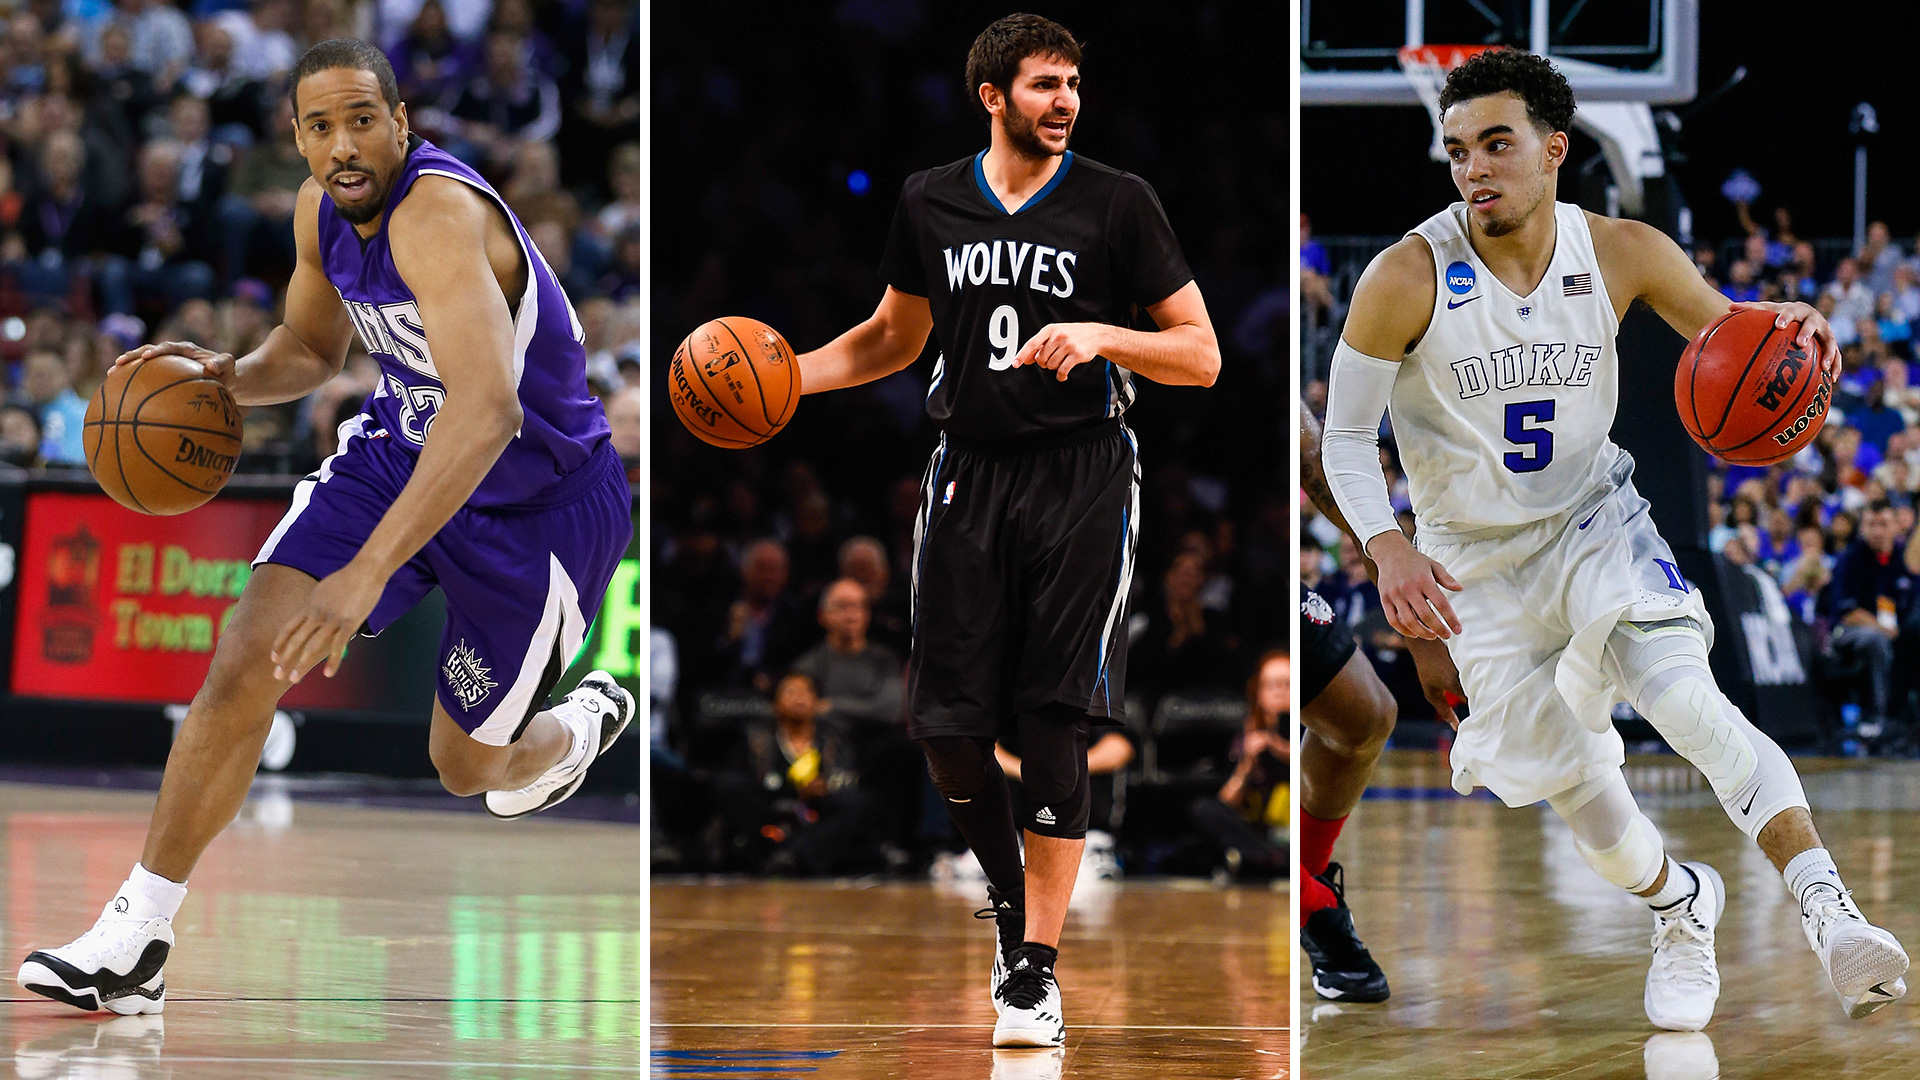 Ricky Rubio is the Timberwolves' point guard, now and in the future